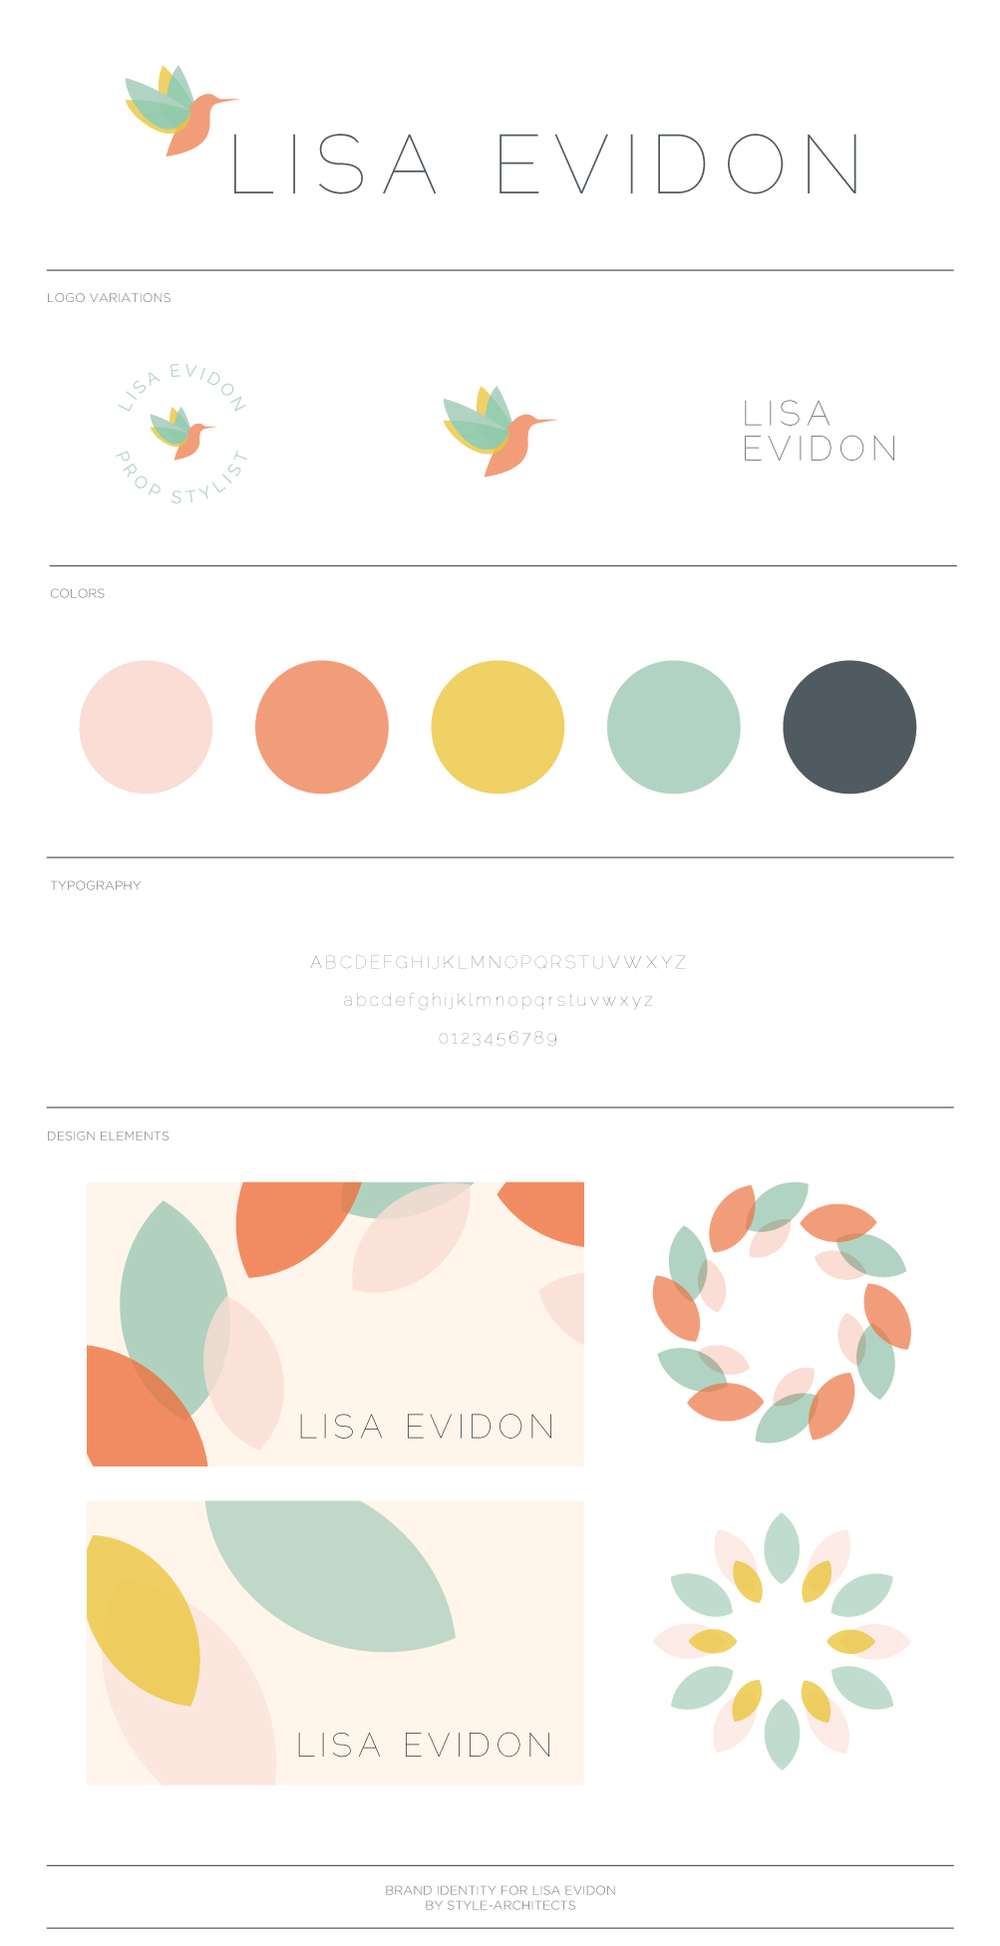 Lisa Evidon branding by Style-Architects